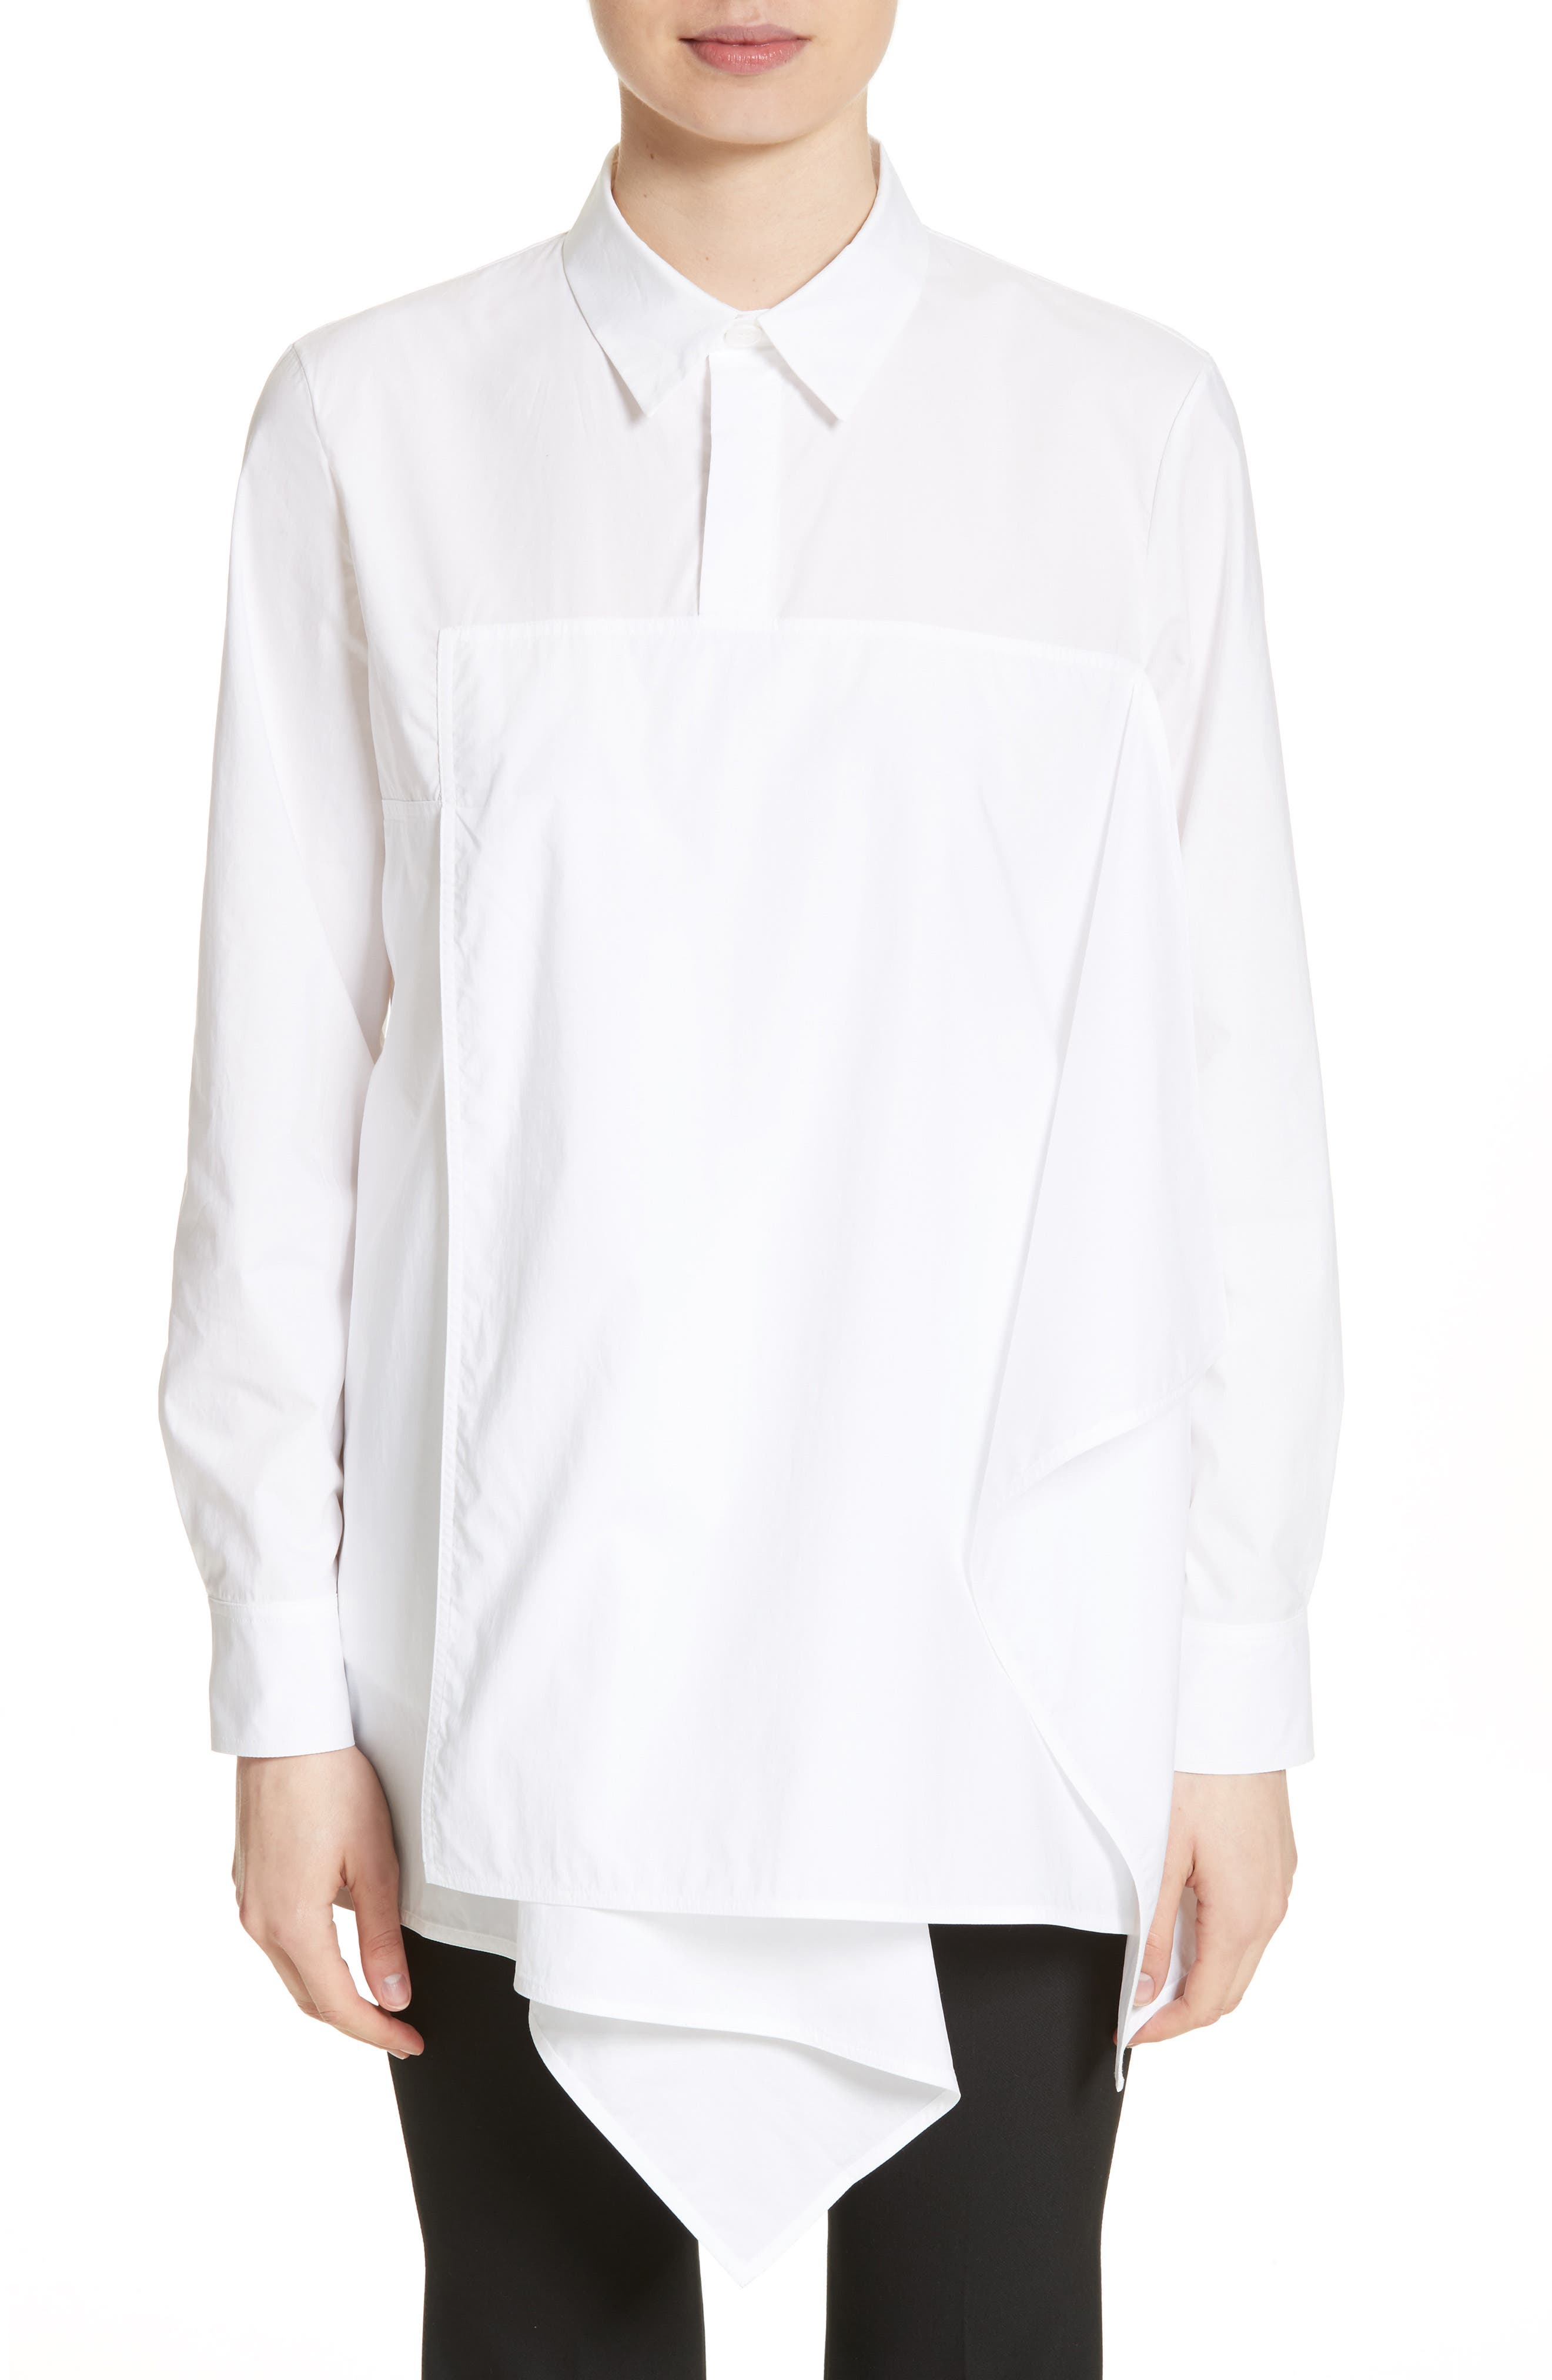 Alternate Image 1 Selected - Marni Draped Cotton Poplin Shirt